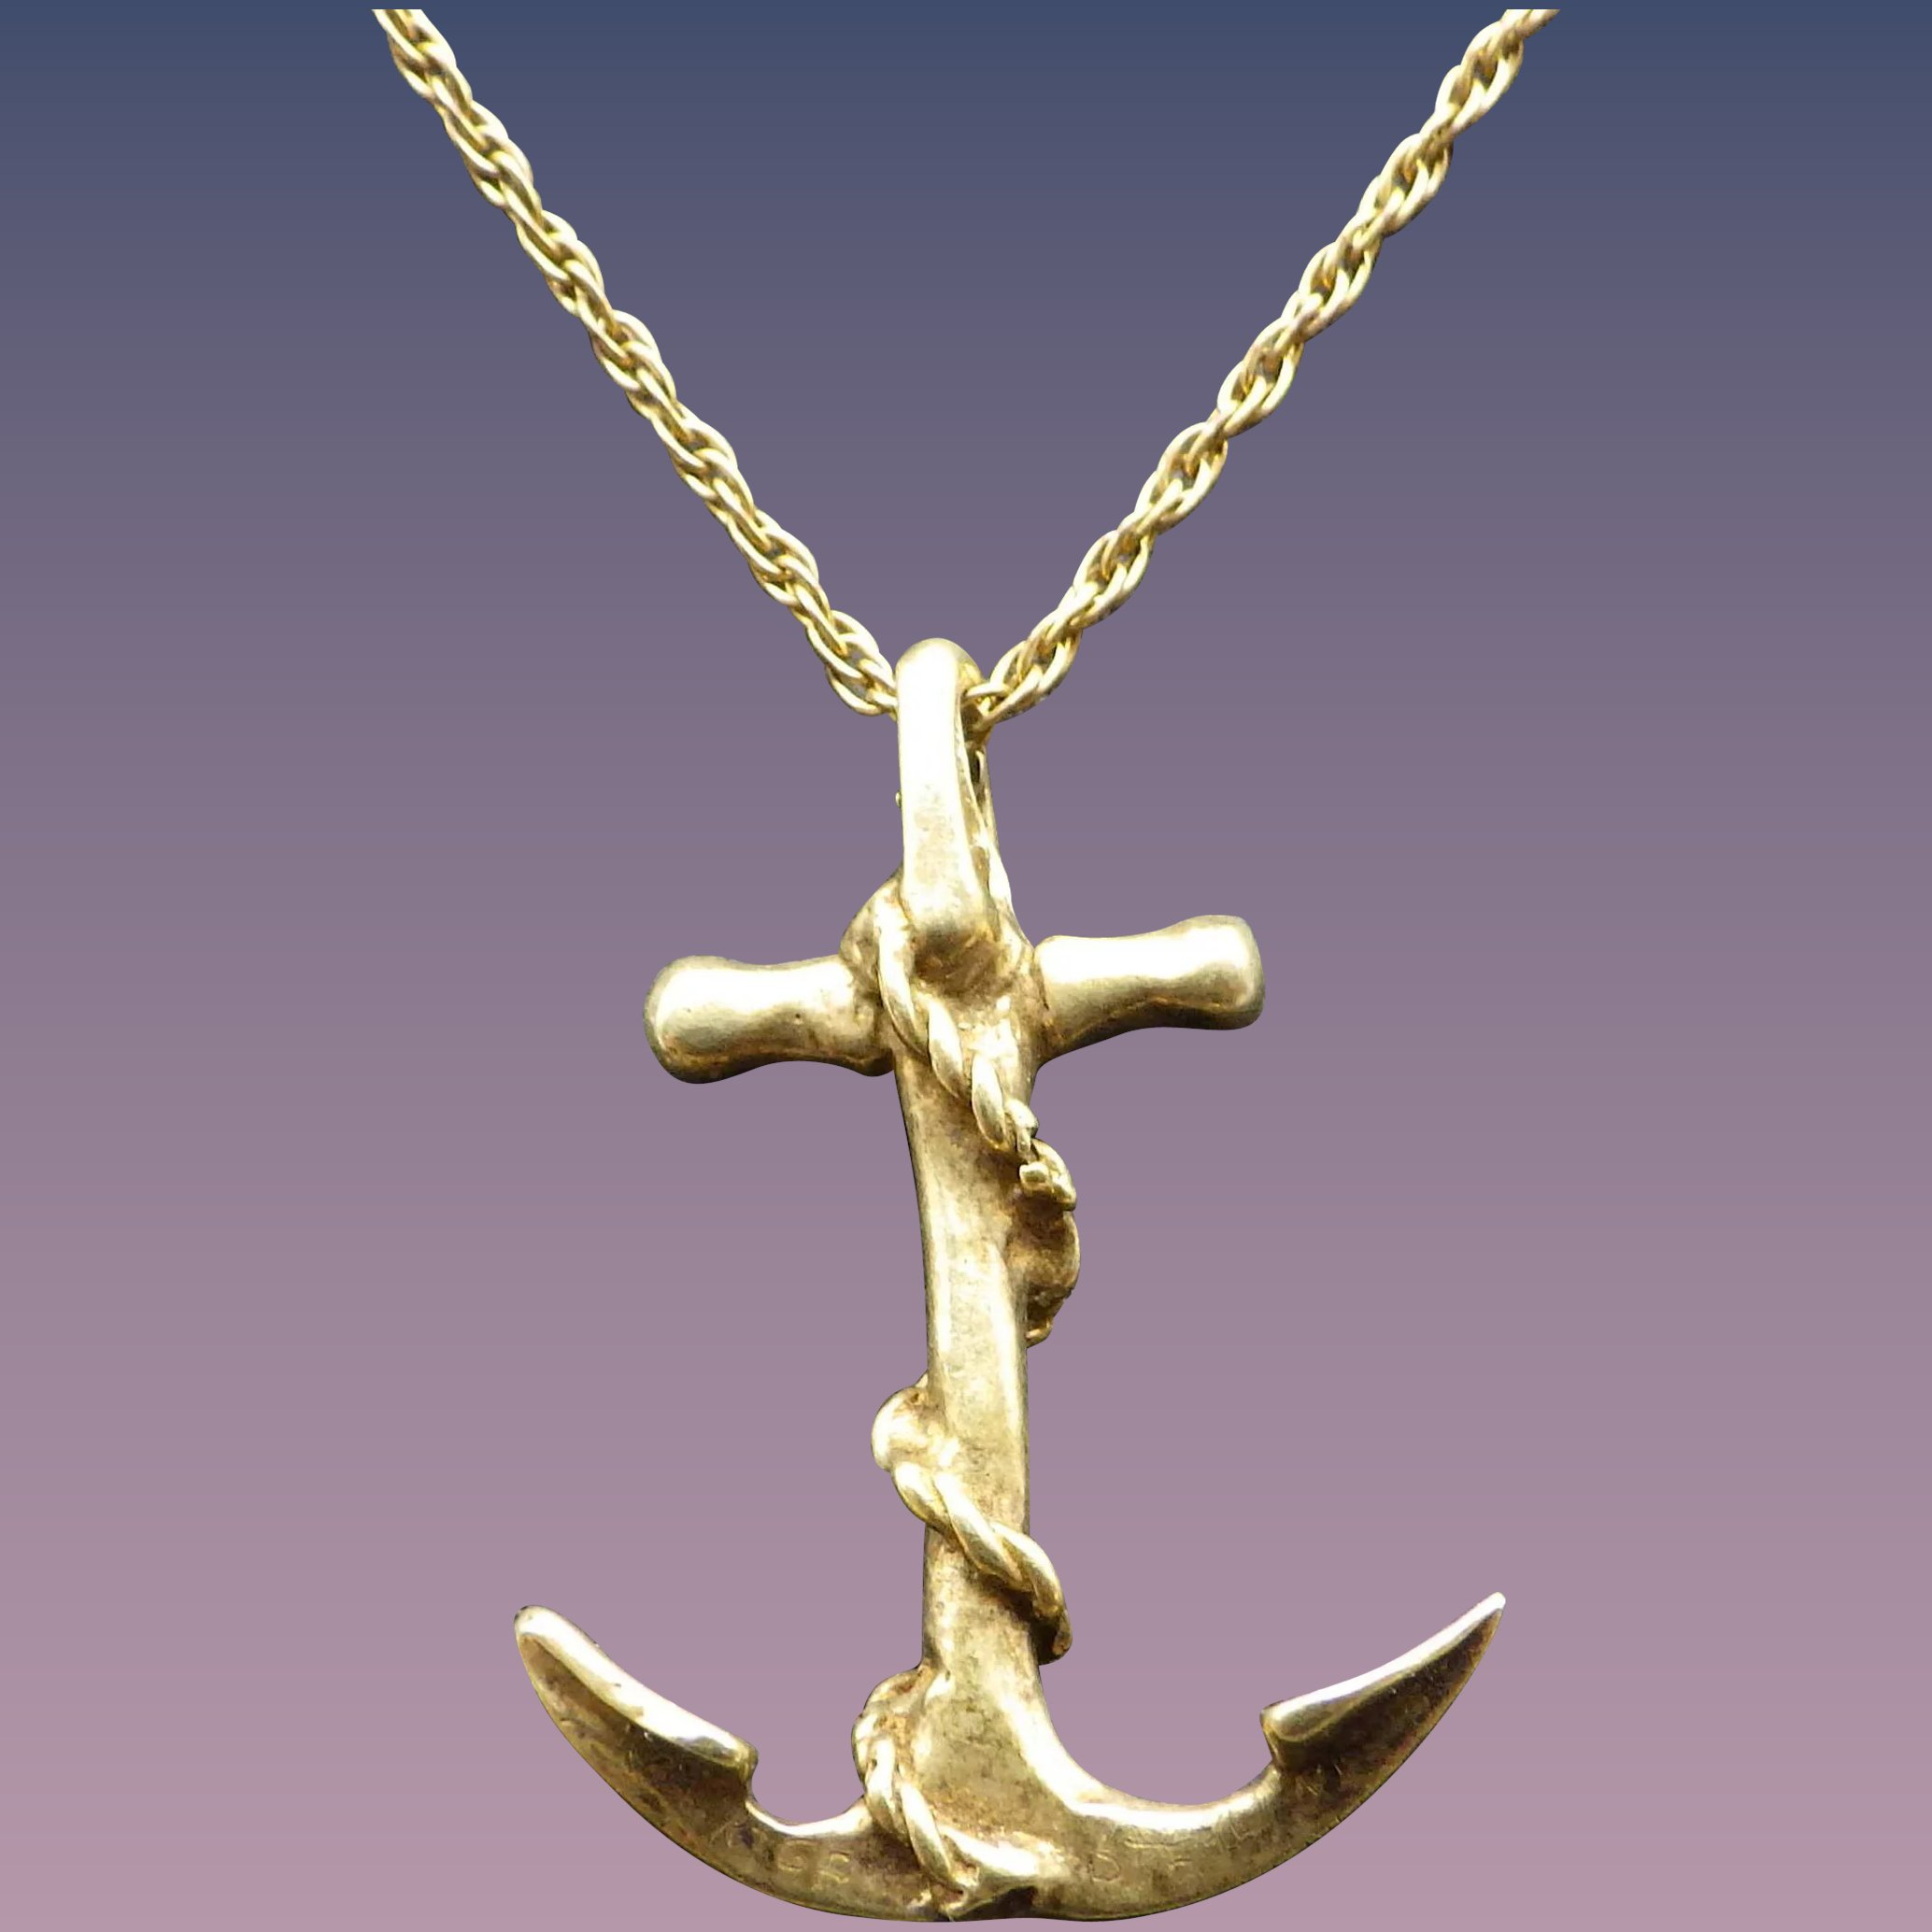 friends best pendant necklace striped chain s gold necklaces anchor tone claire